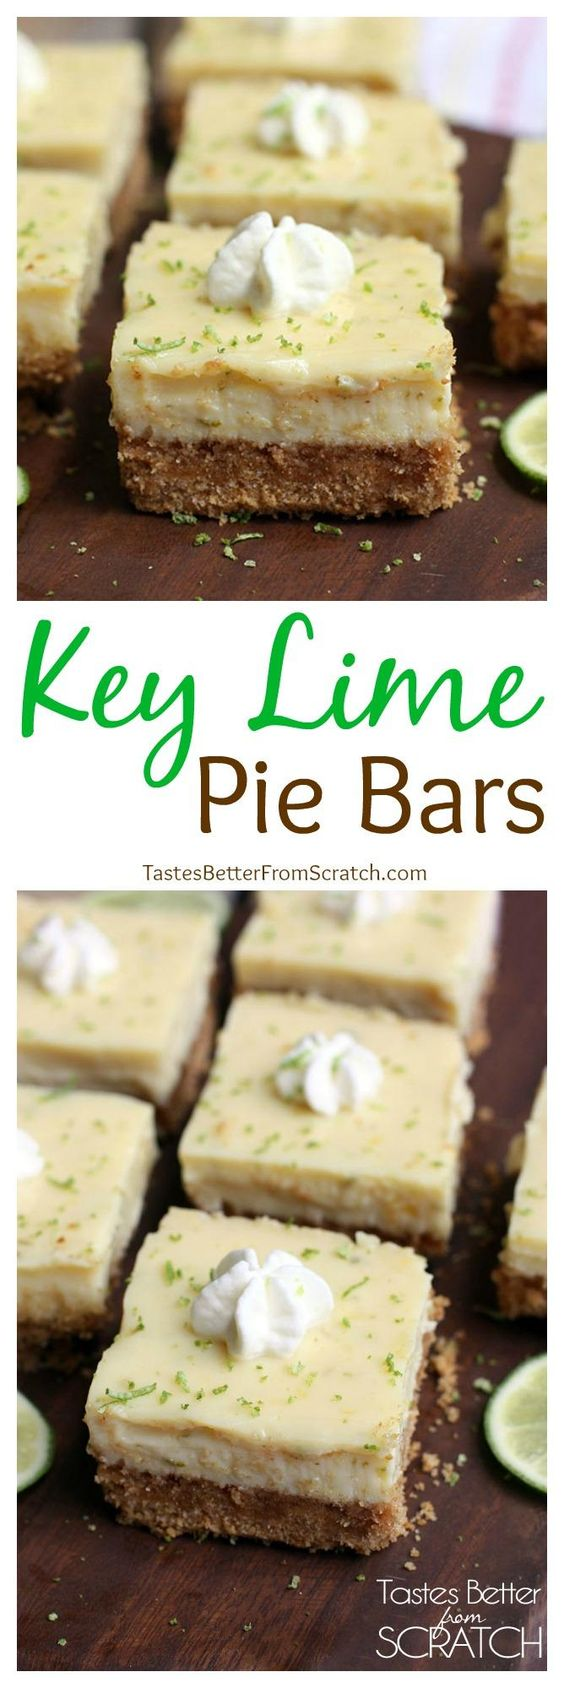 Key Lime Pie Bars  Go to http://fingerlickingrestaurantrecipes.weebly.com/ and get 1000 tasty and delicious recipes  #dessert recipes